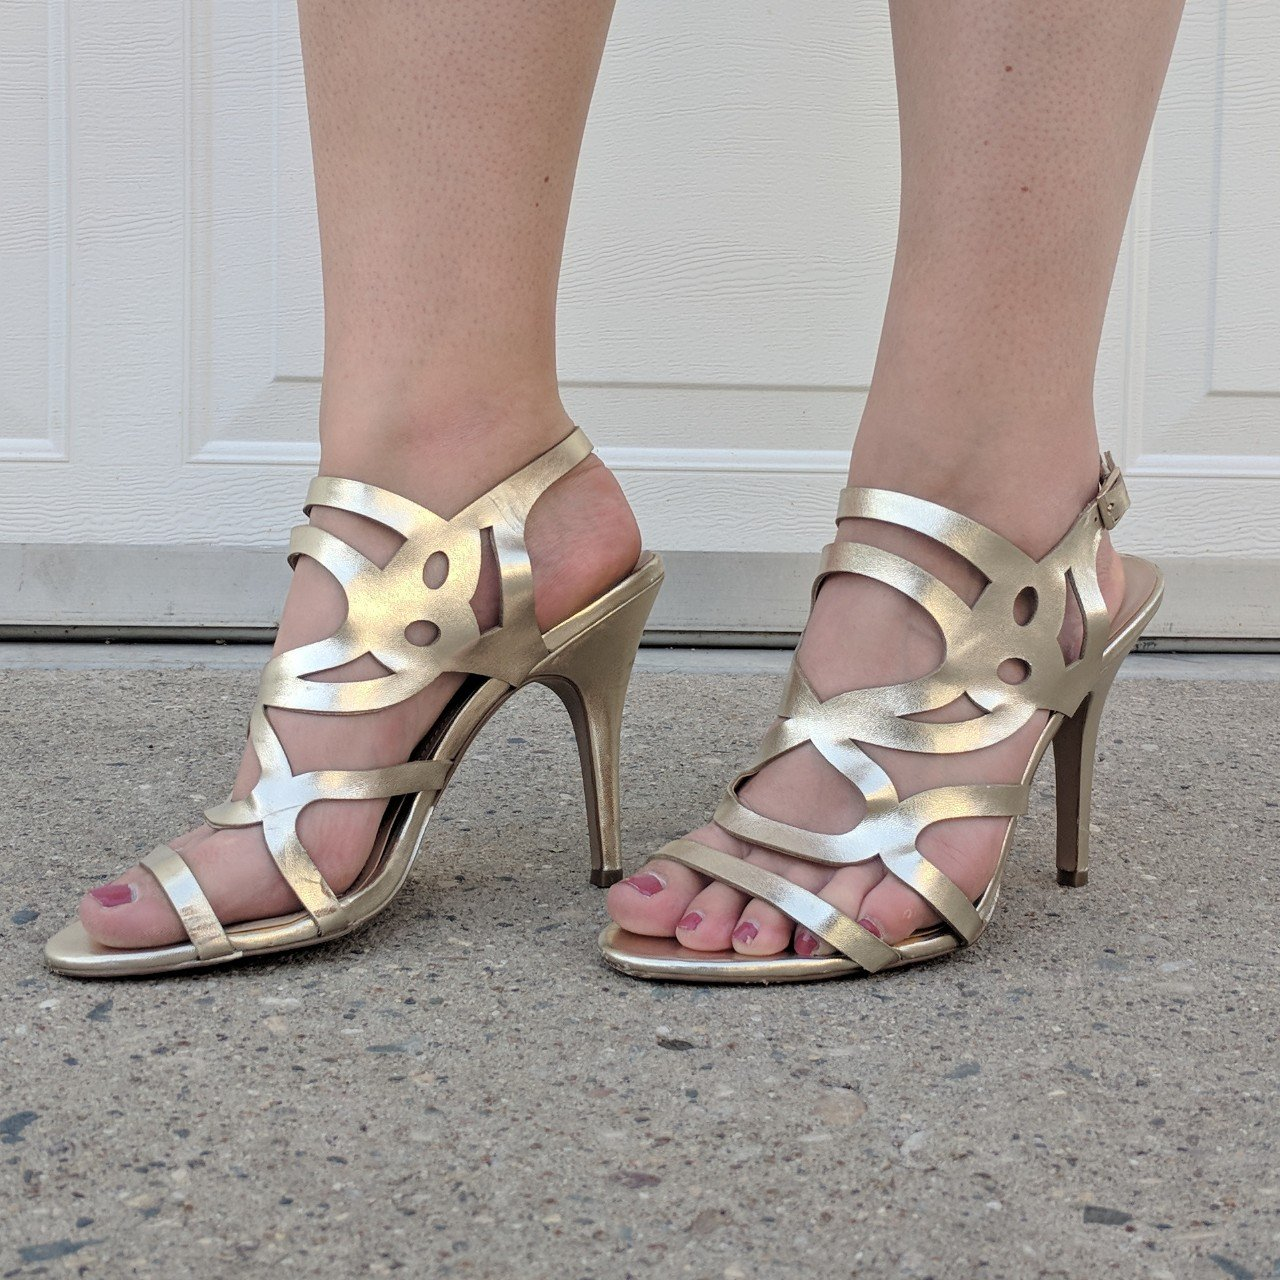 10f5e5498 Gold high heeled sandals. Very cute for a night out! In very - Depop